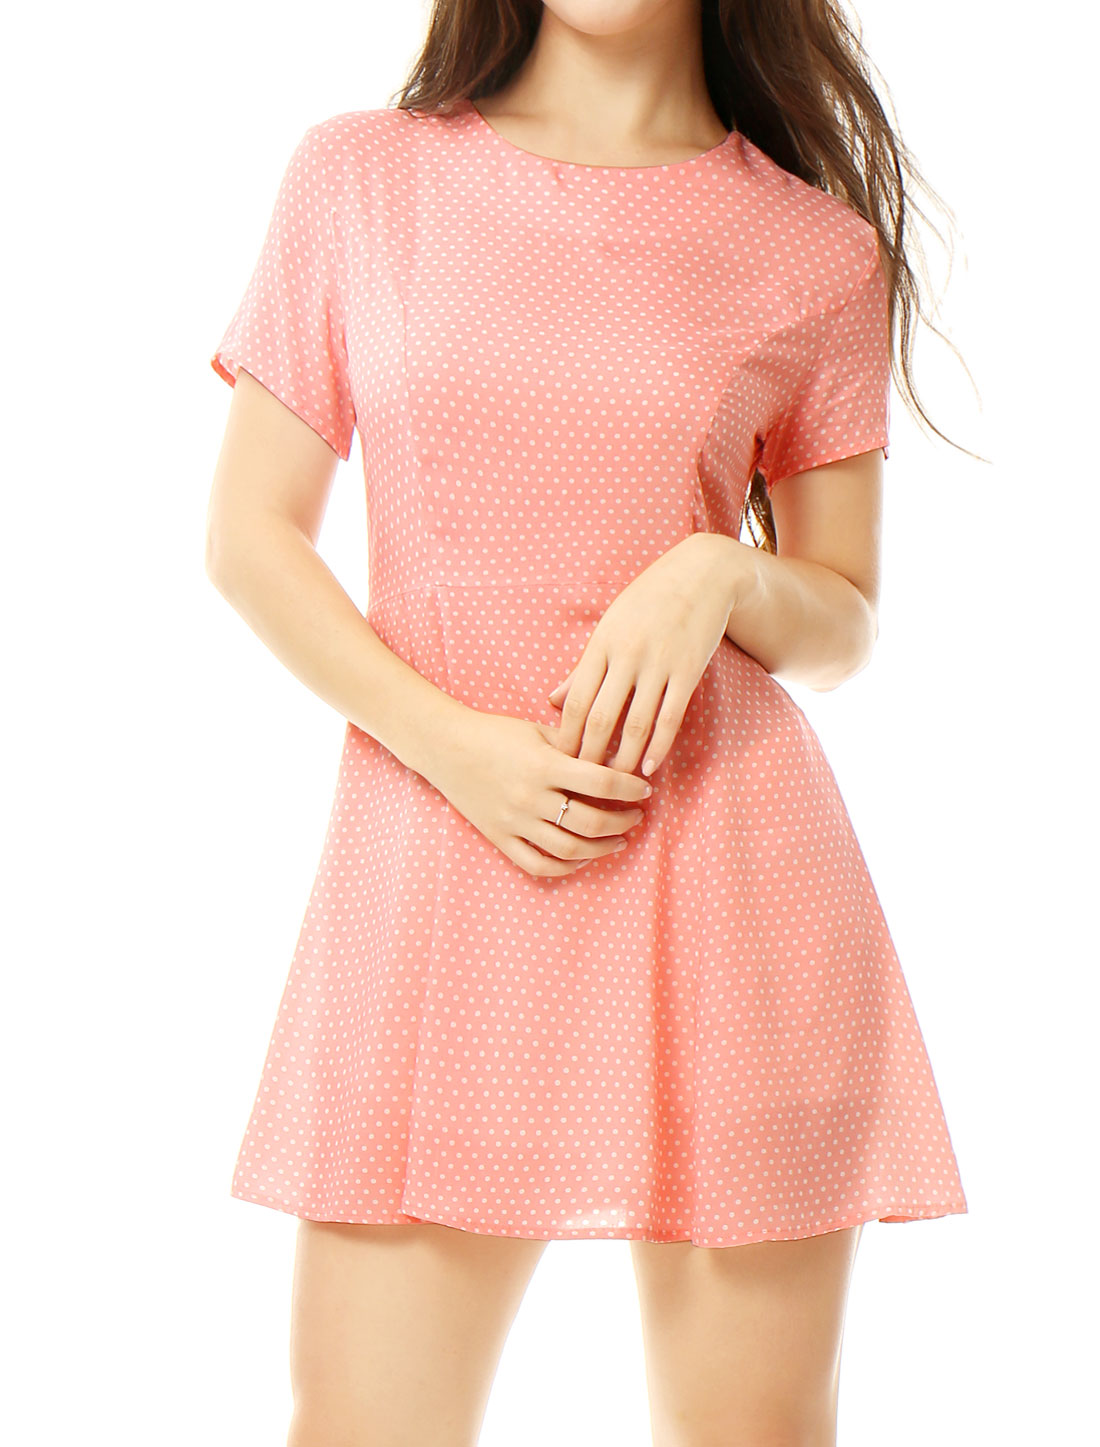 Women Polka Dots Lace Up Back Short Sleeves A Line Dress Pink L